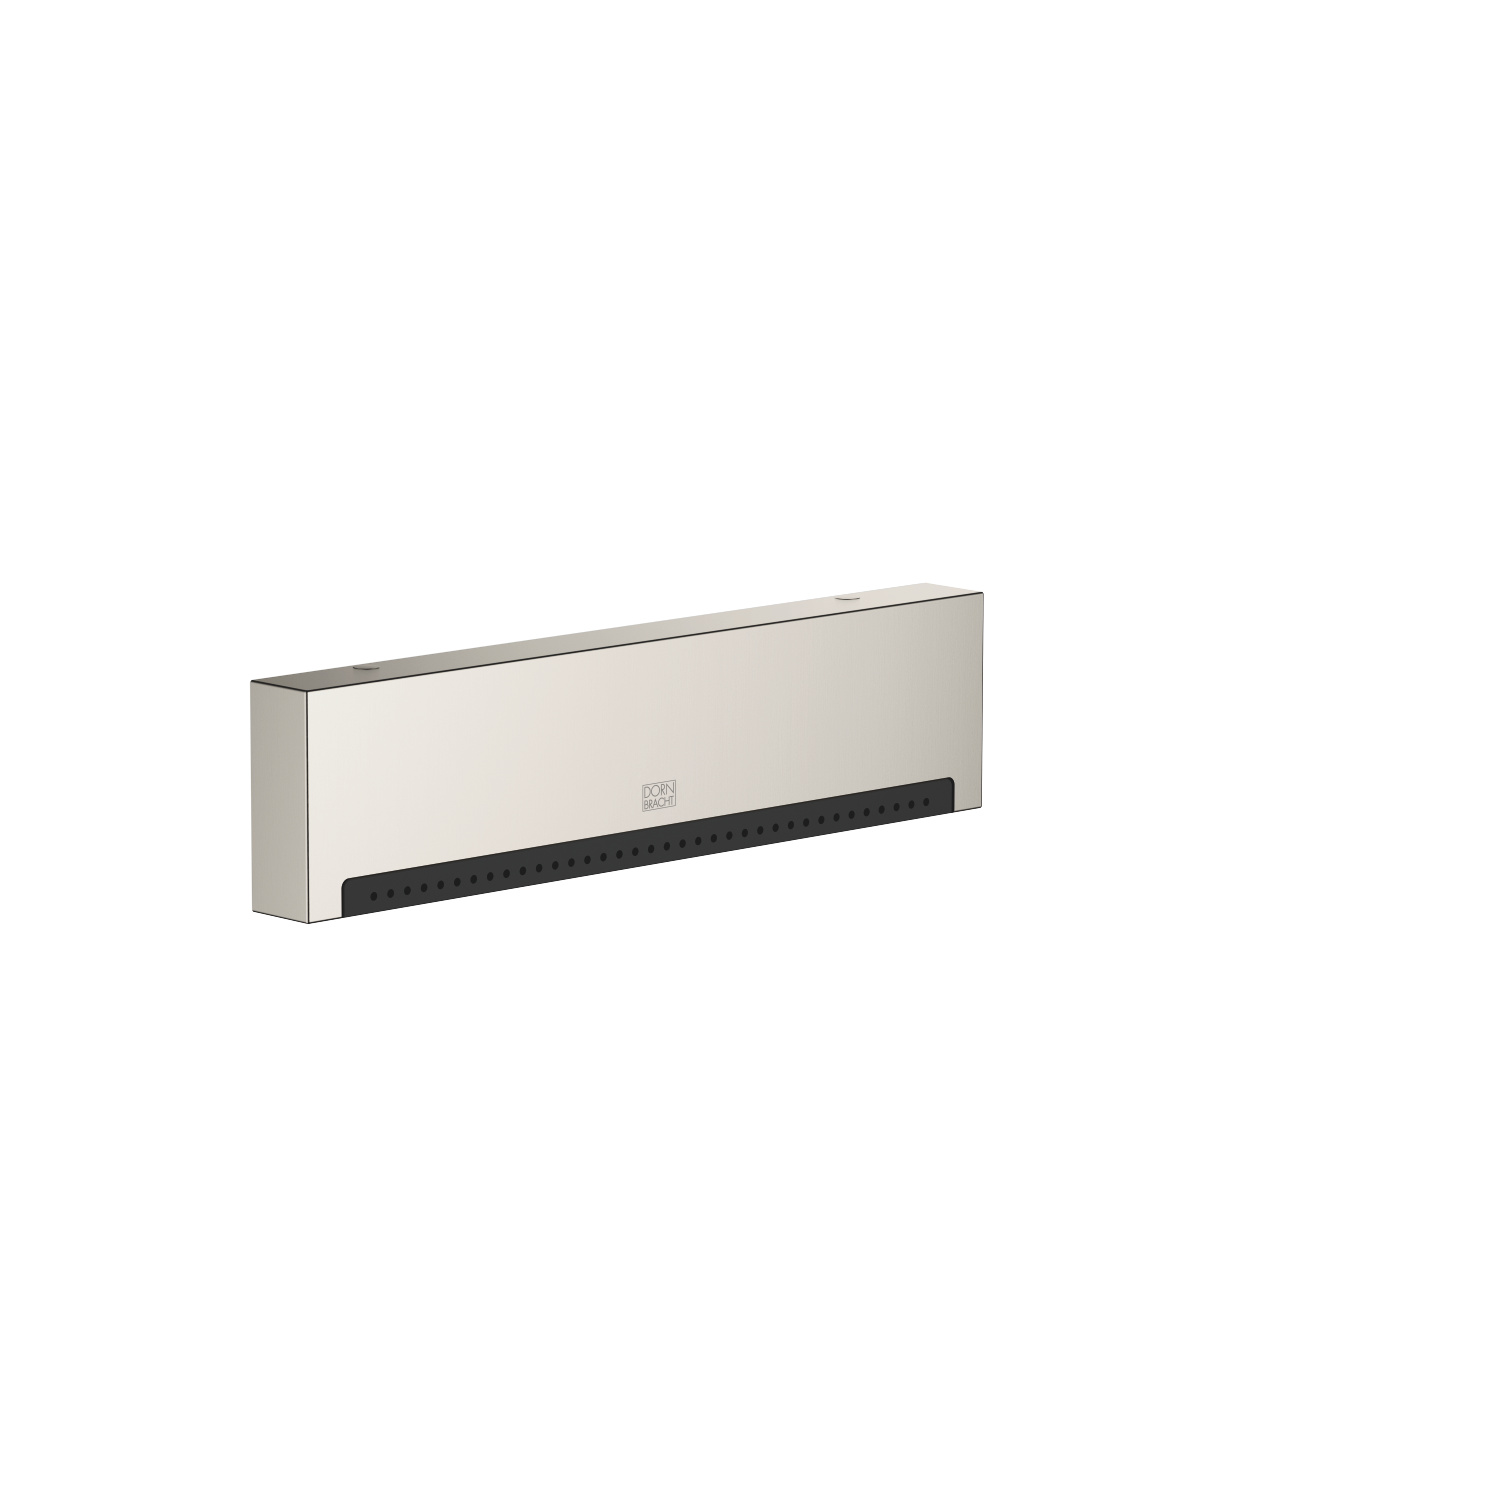 WATER FALL Cascade spout with PEARLSTREAM for wall-mounted installation - platinum matte